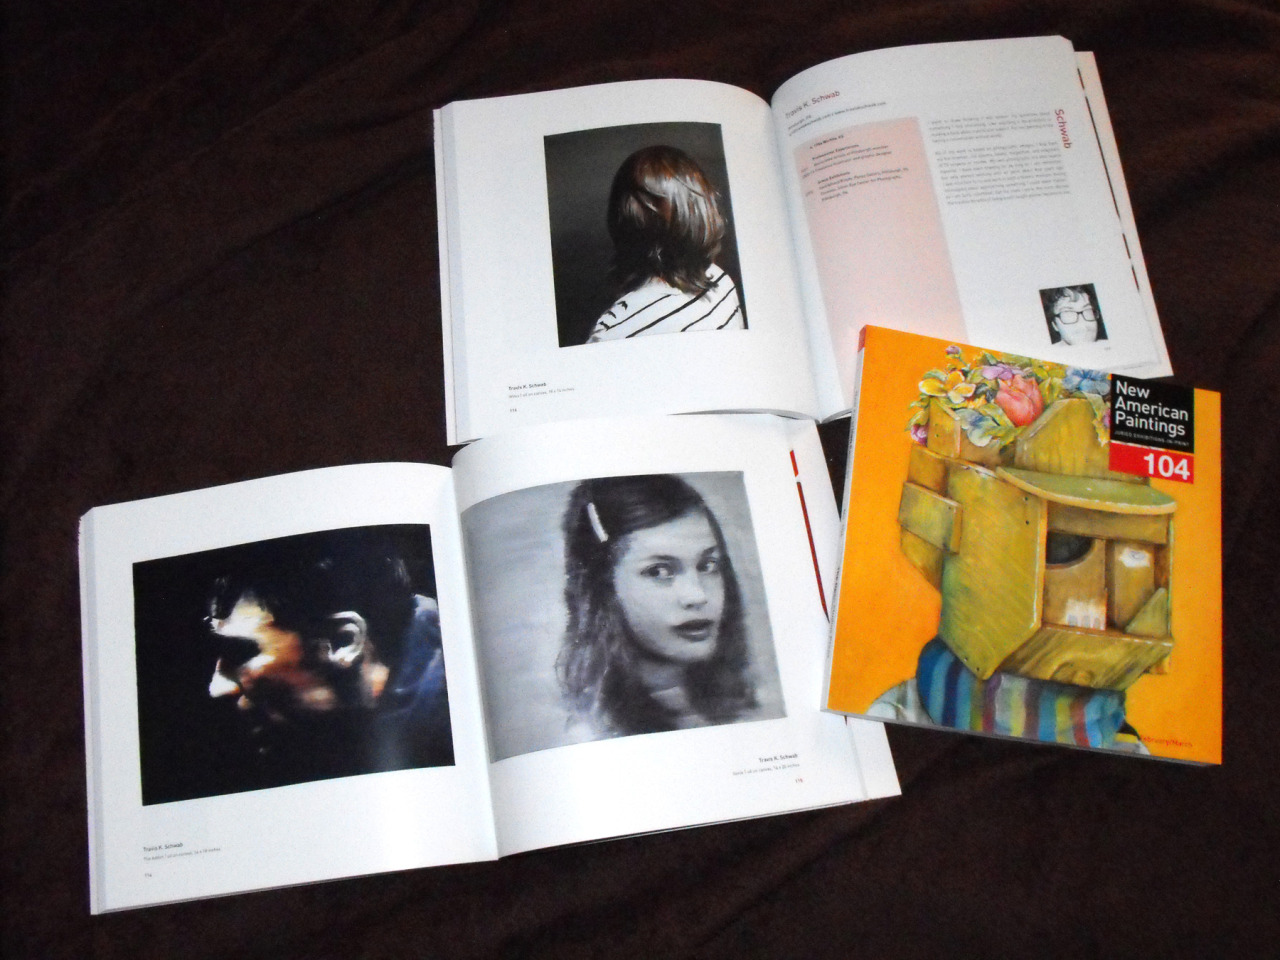 Very honored to be included in the new issue of New American Paintings! On sale in bookstores across the country this March. Thanks to curator Nina Gara Bozicnik and the fine folks at NAP for selecting me!